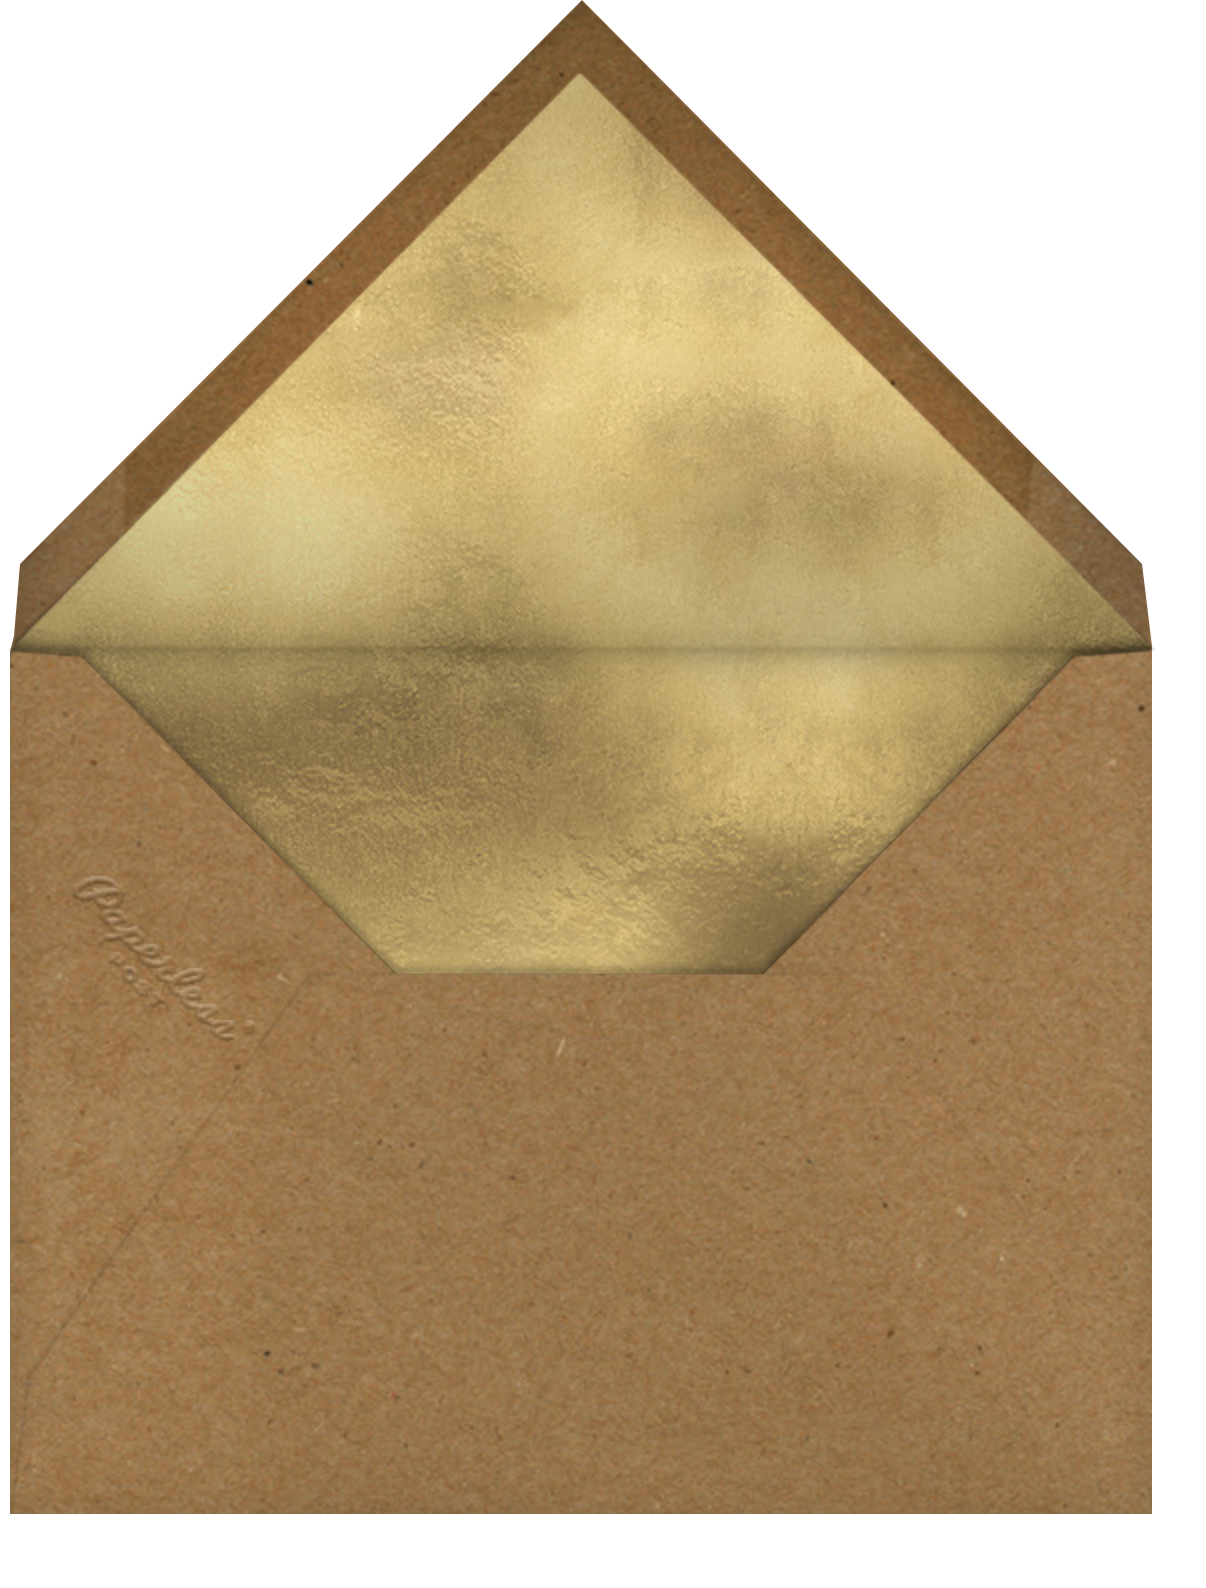 Norway Spruce - John Derian - Christmas - envelope back